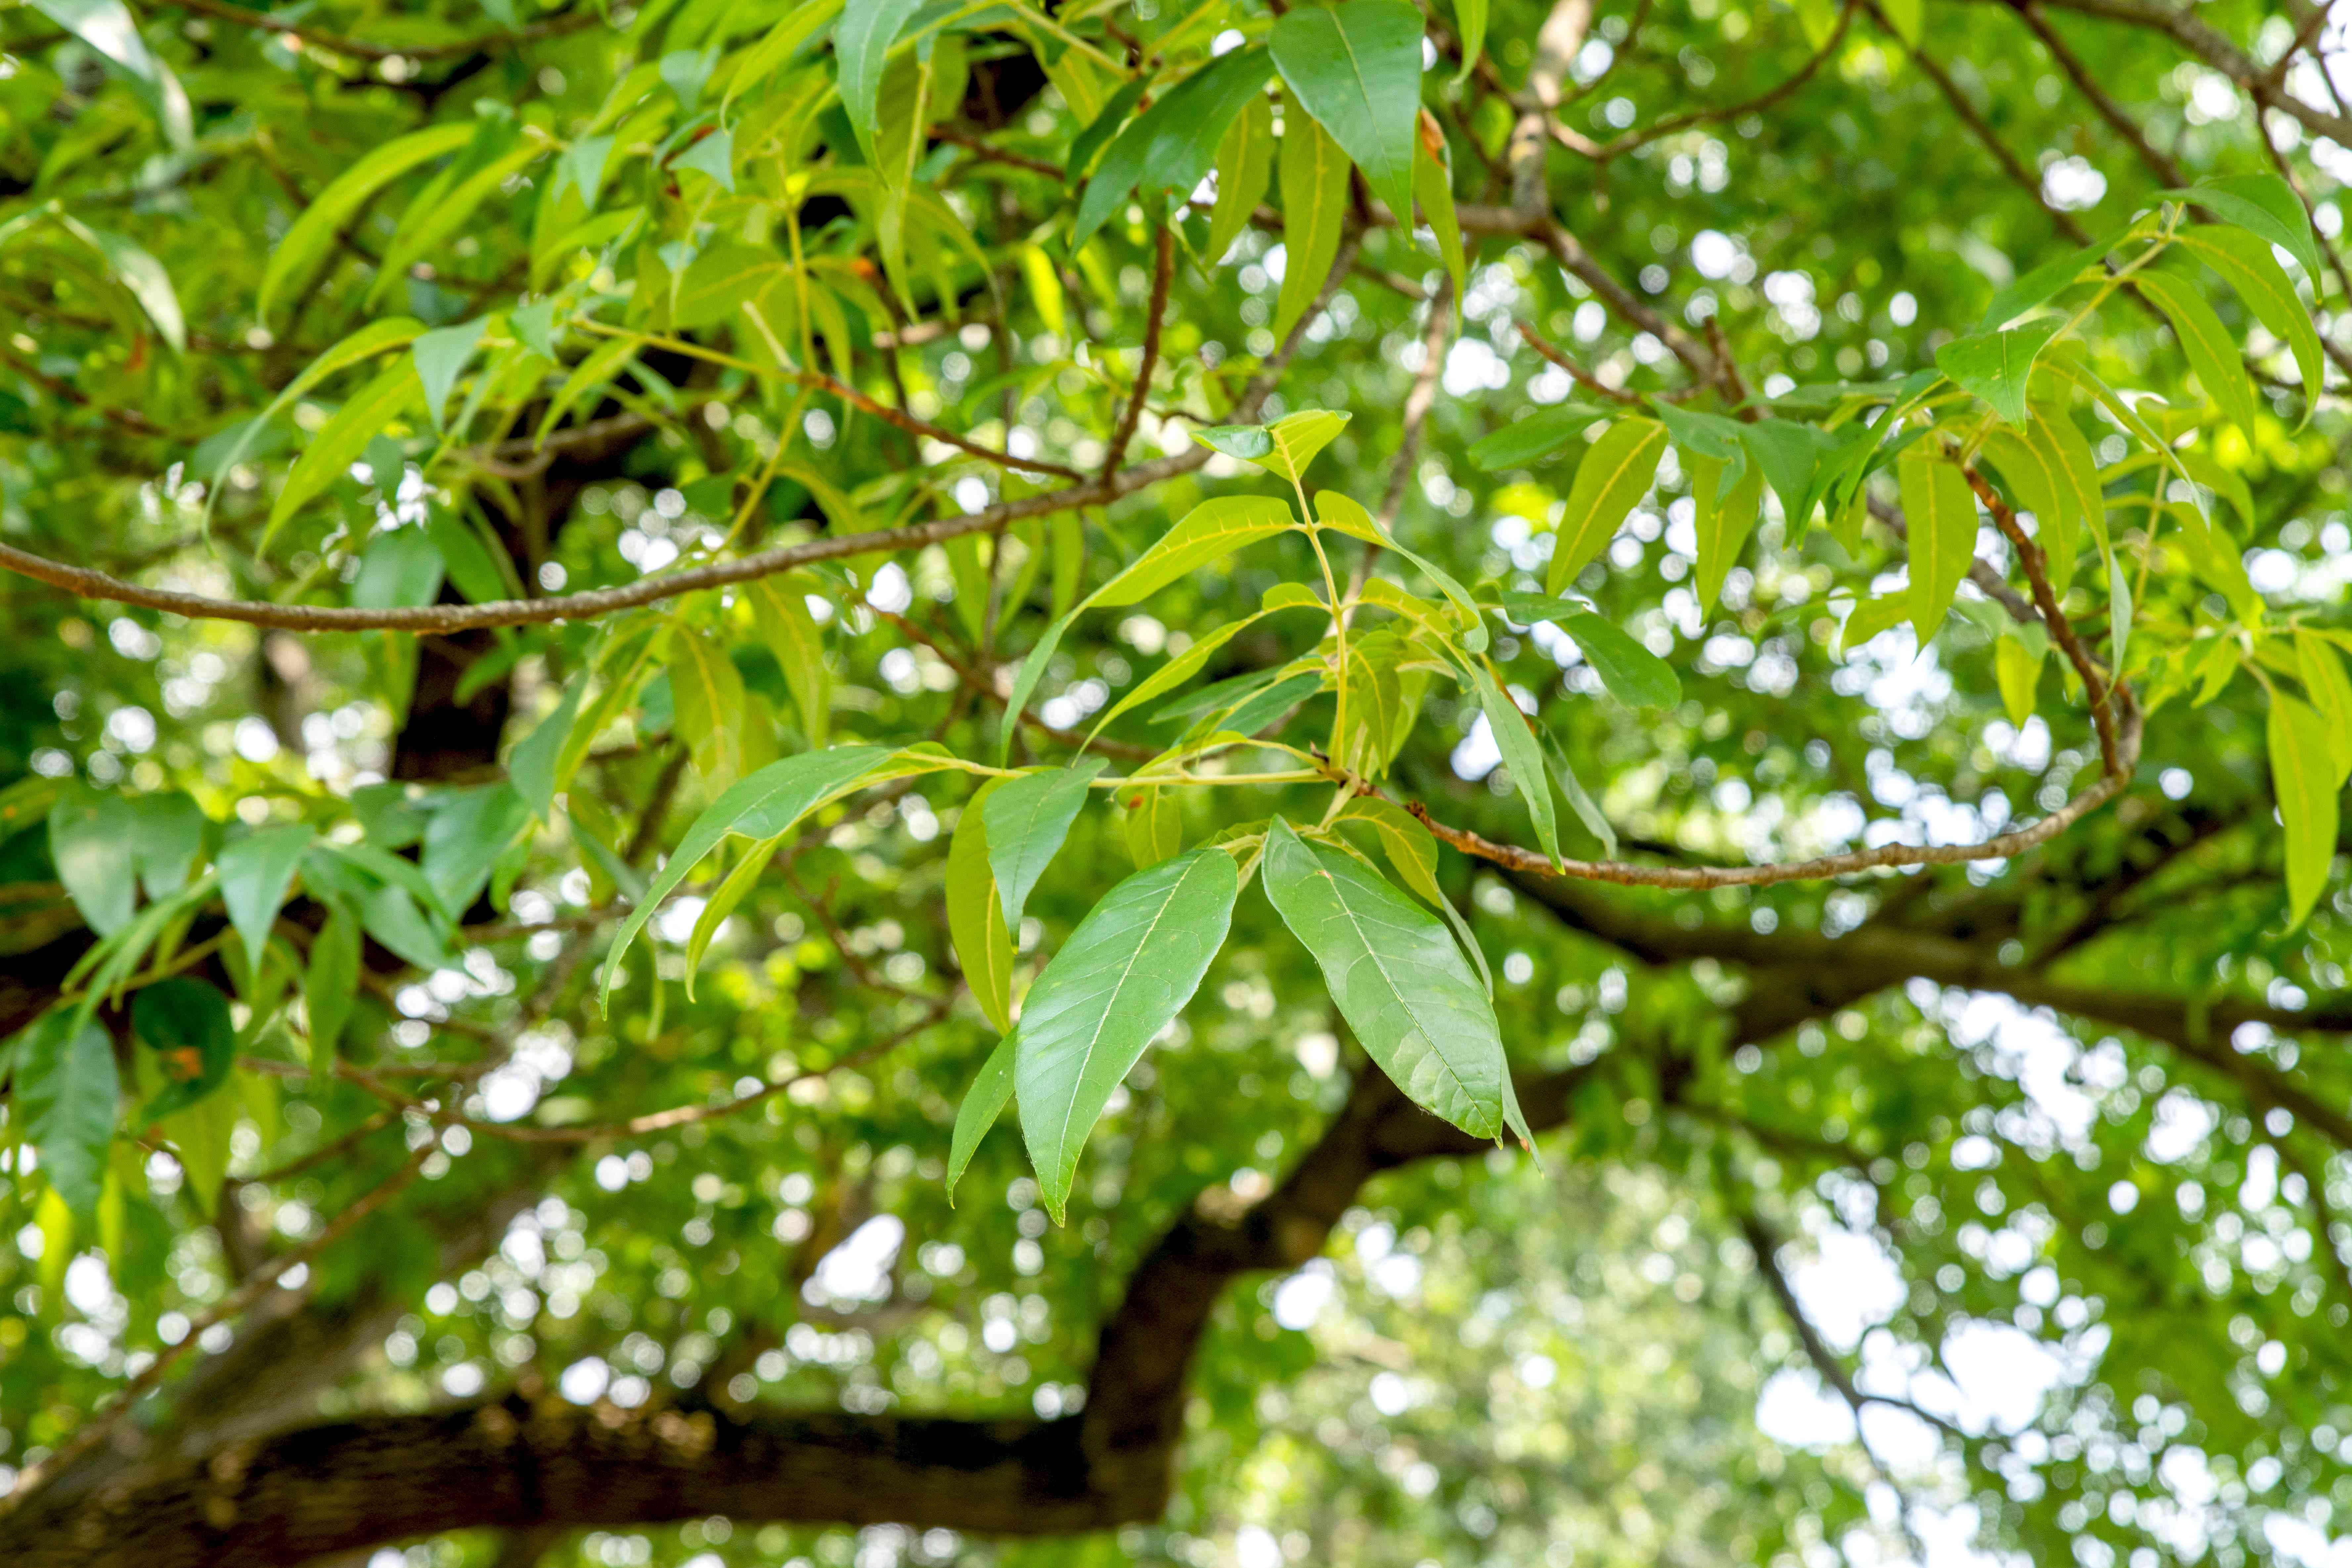 Pumpkin ash tree branches with multiple leaflets on ends